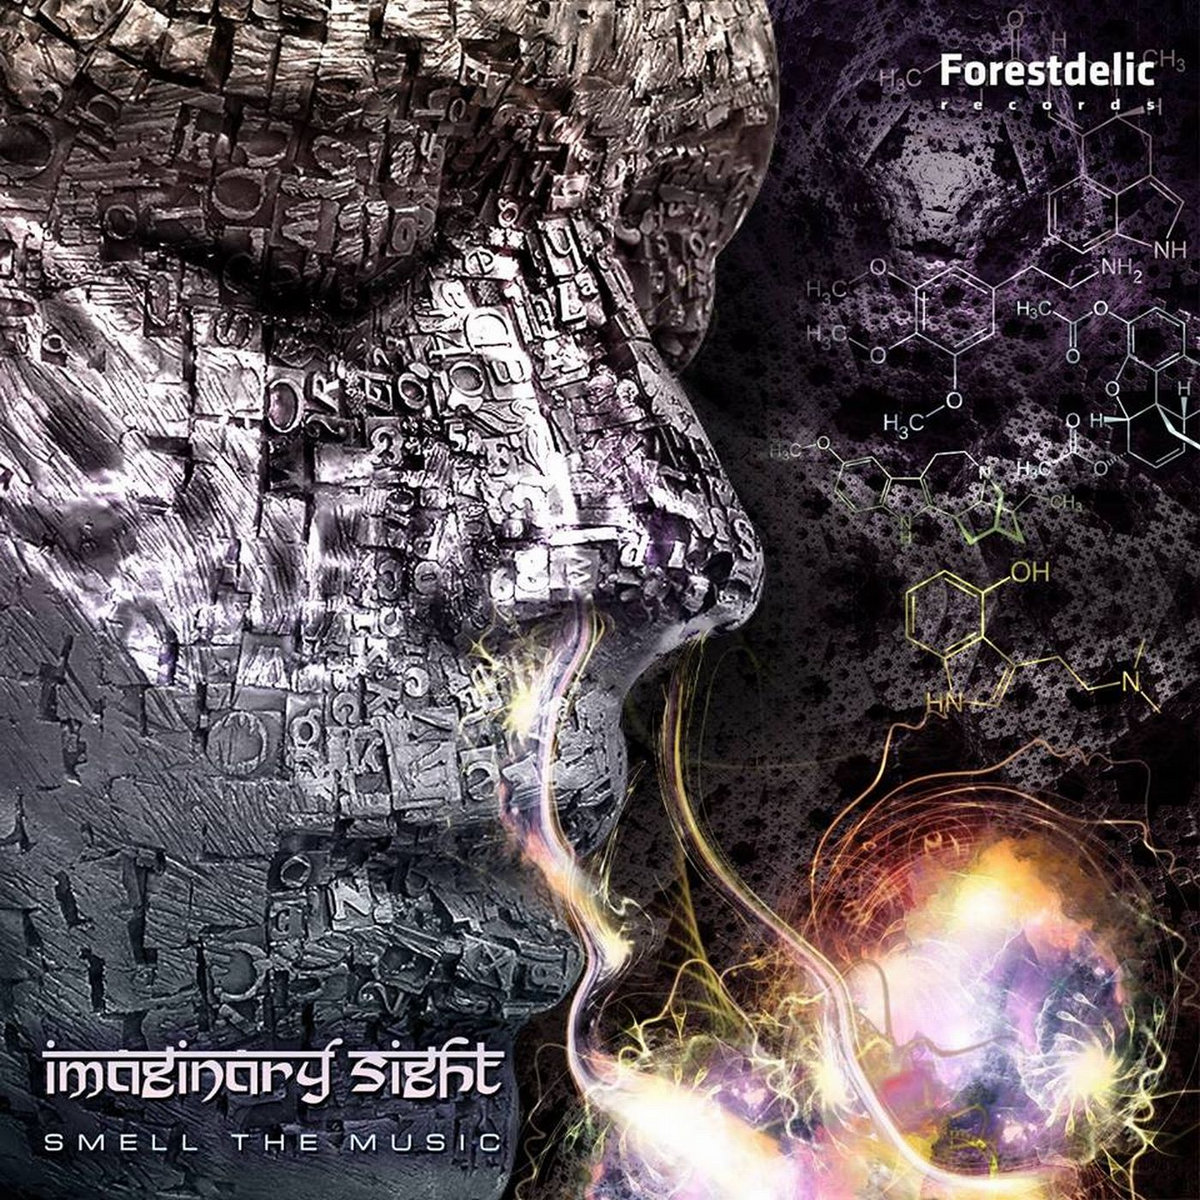 The Music Ep Imaginary Sight Smell The Music Ep Forestdelic Records